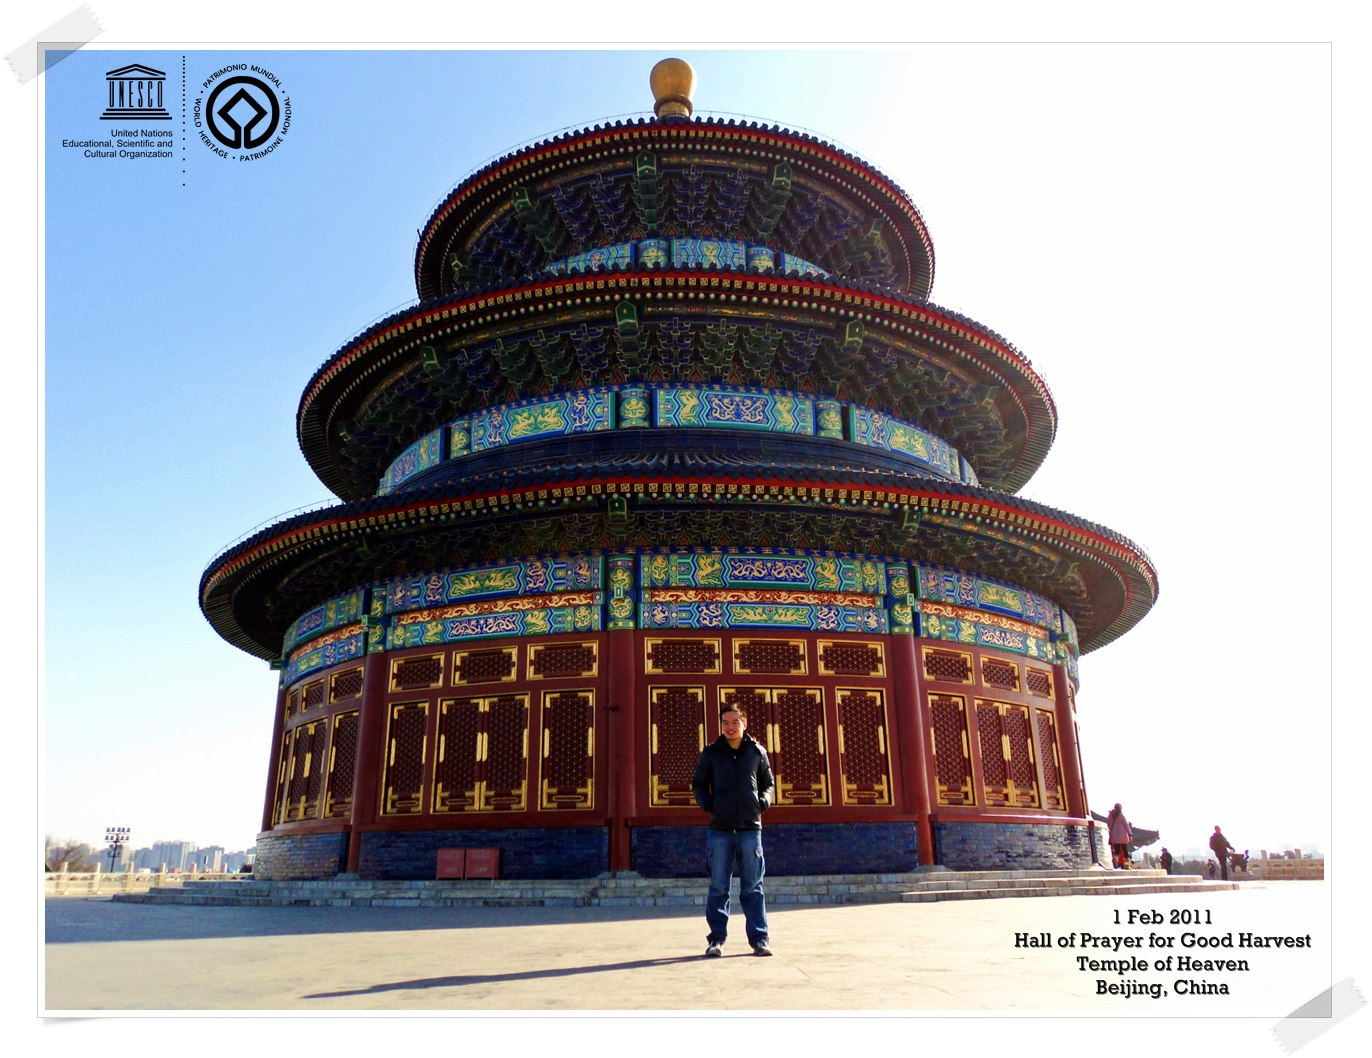 Perfectly round temple Temple of Heaven: an Imperial Sacrificial Altar in Beijing - China Thomas shaw